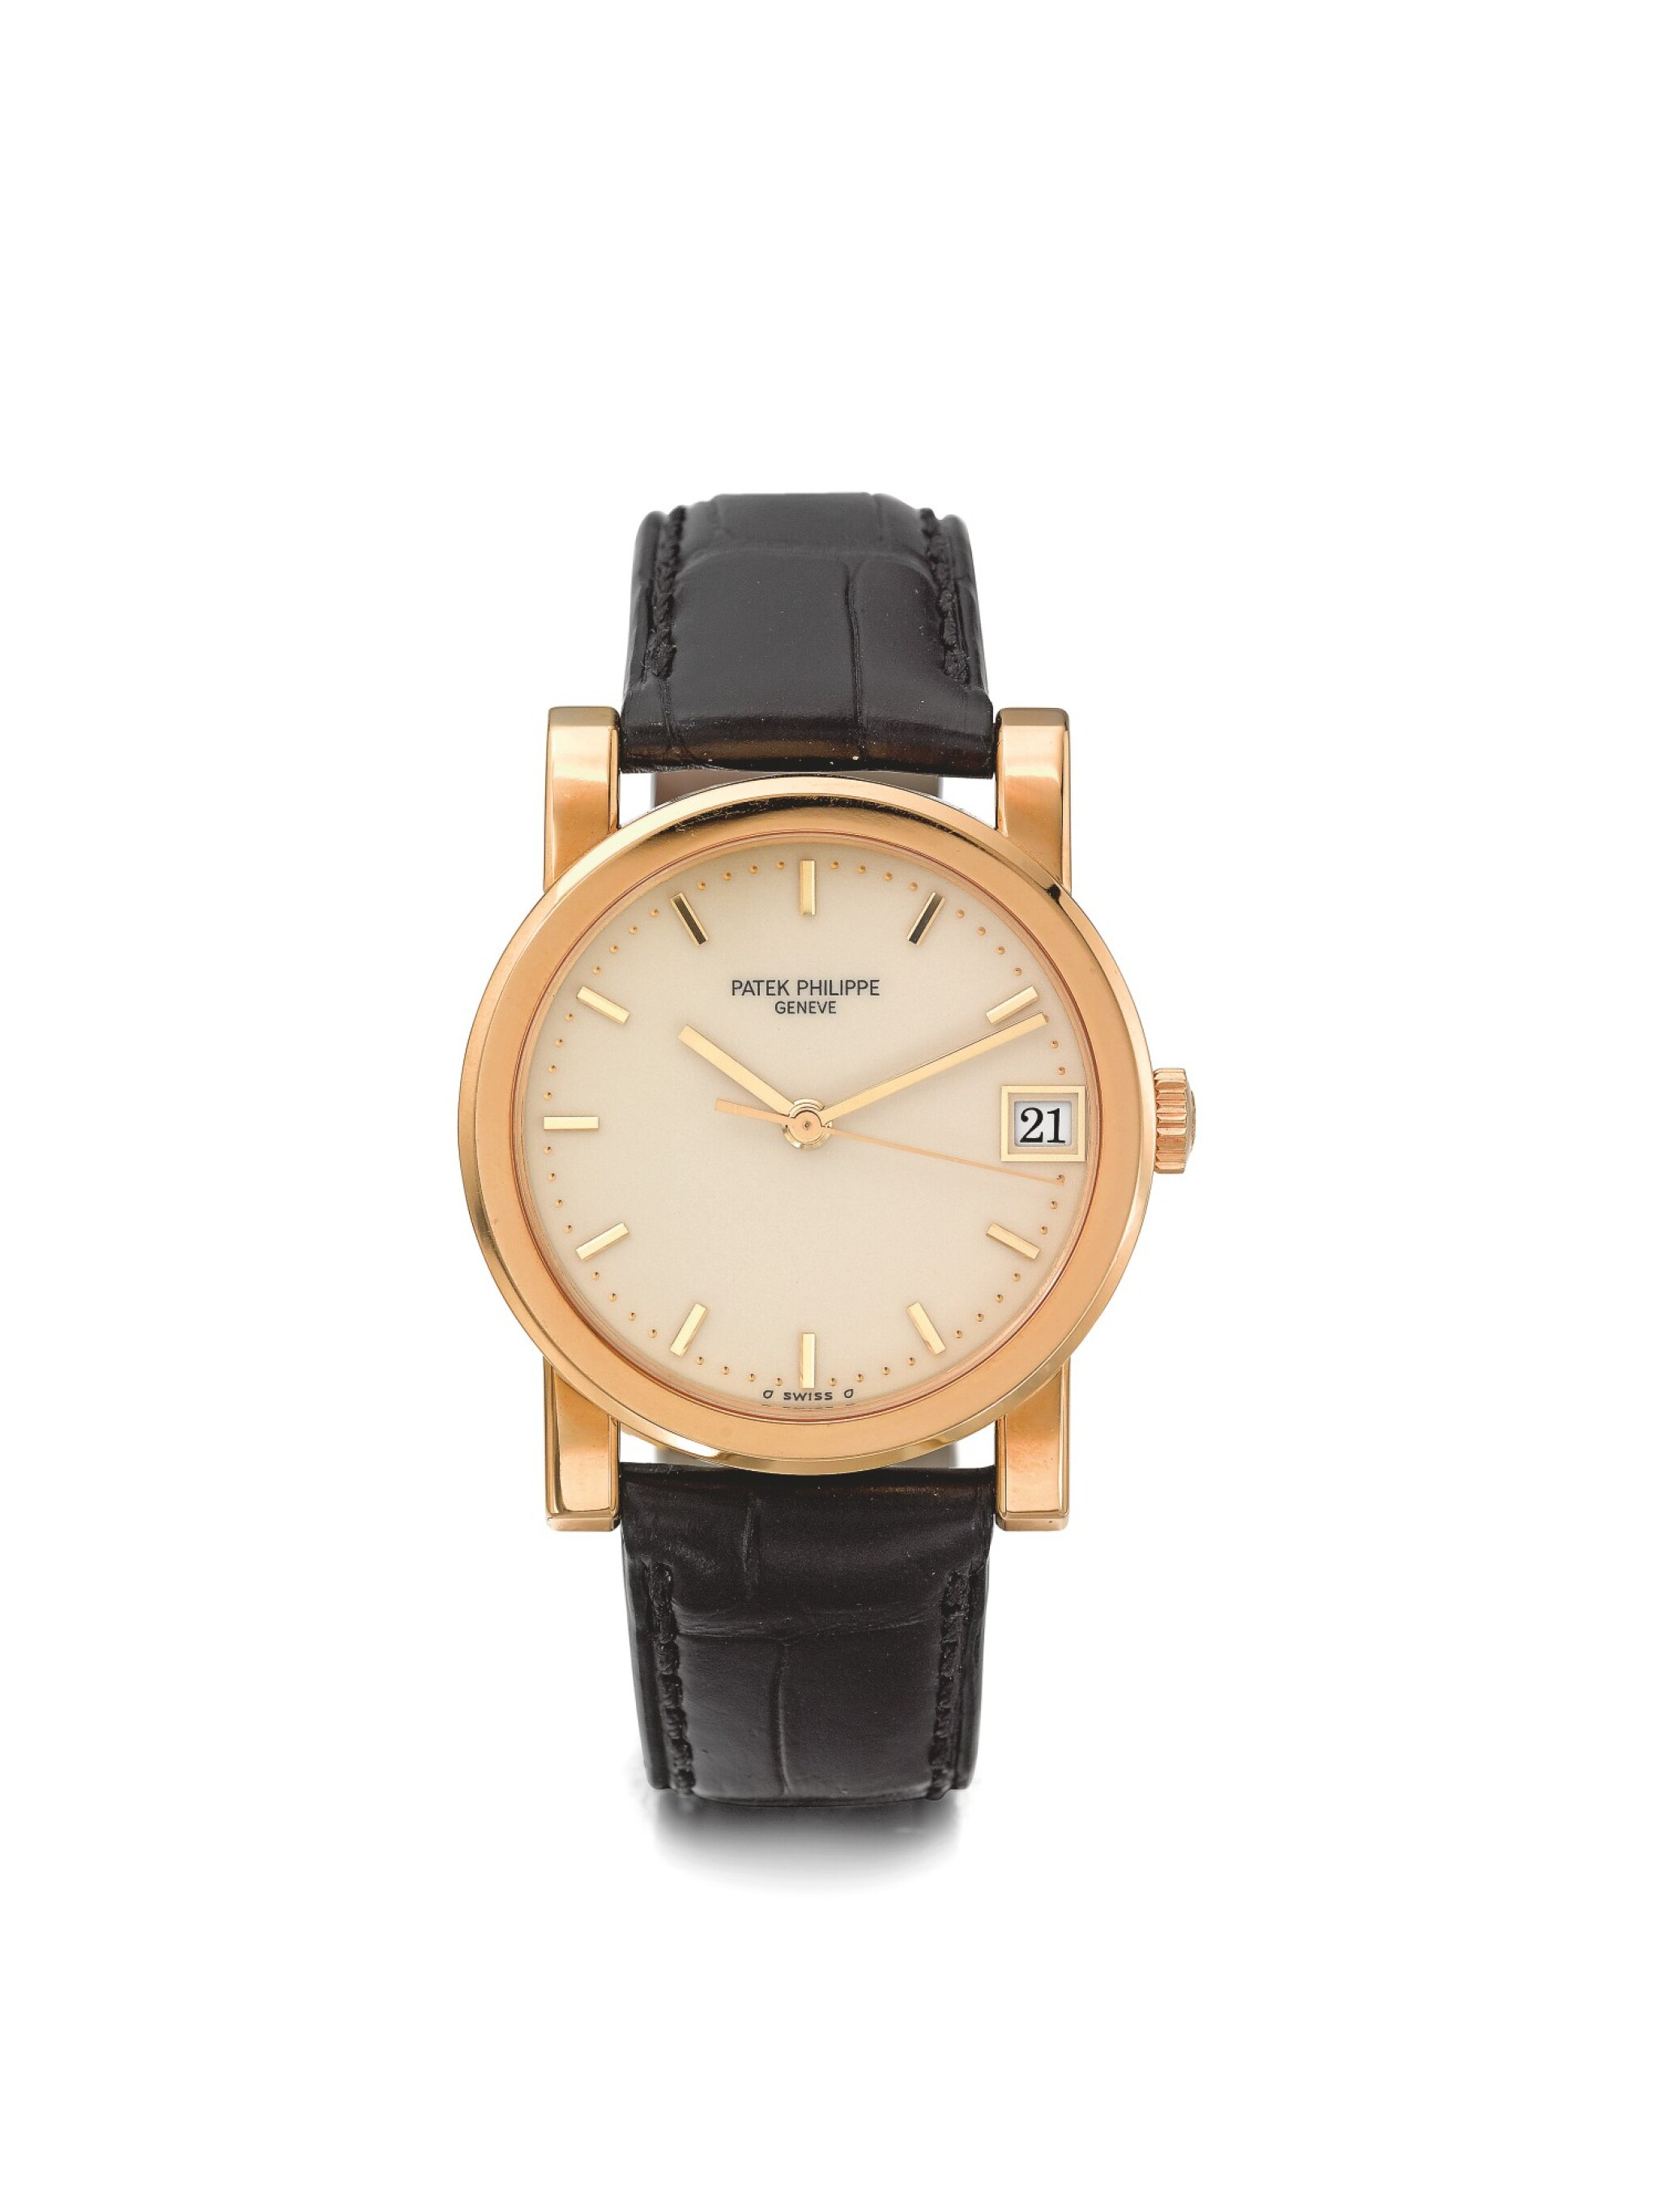 PATEK PHILIPPE | REF 5012, A YELLOW GOLD AUTOMATIC WRISTWATCH WITH DATE MADE IN 1993